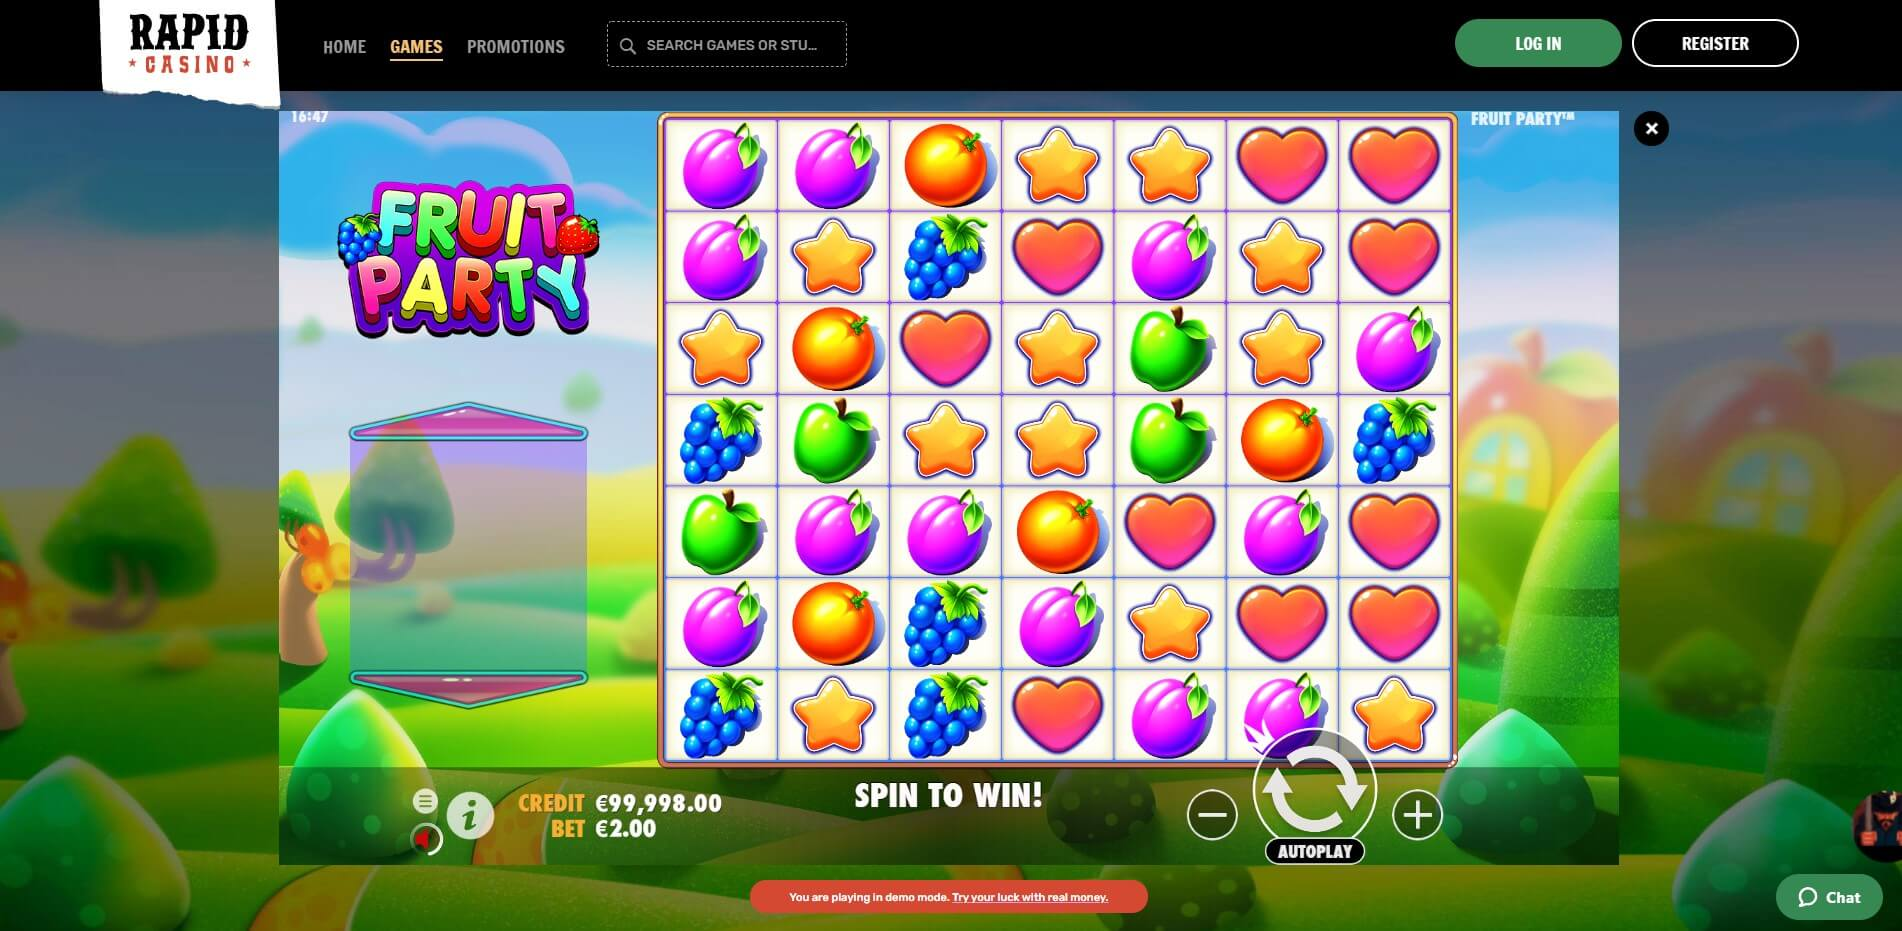 Game PLay at Rapid CAsino